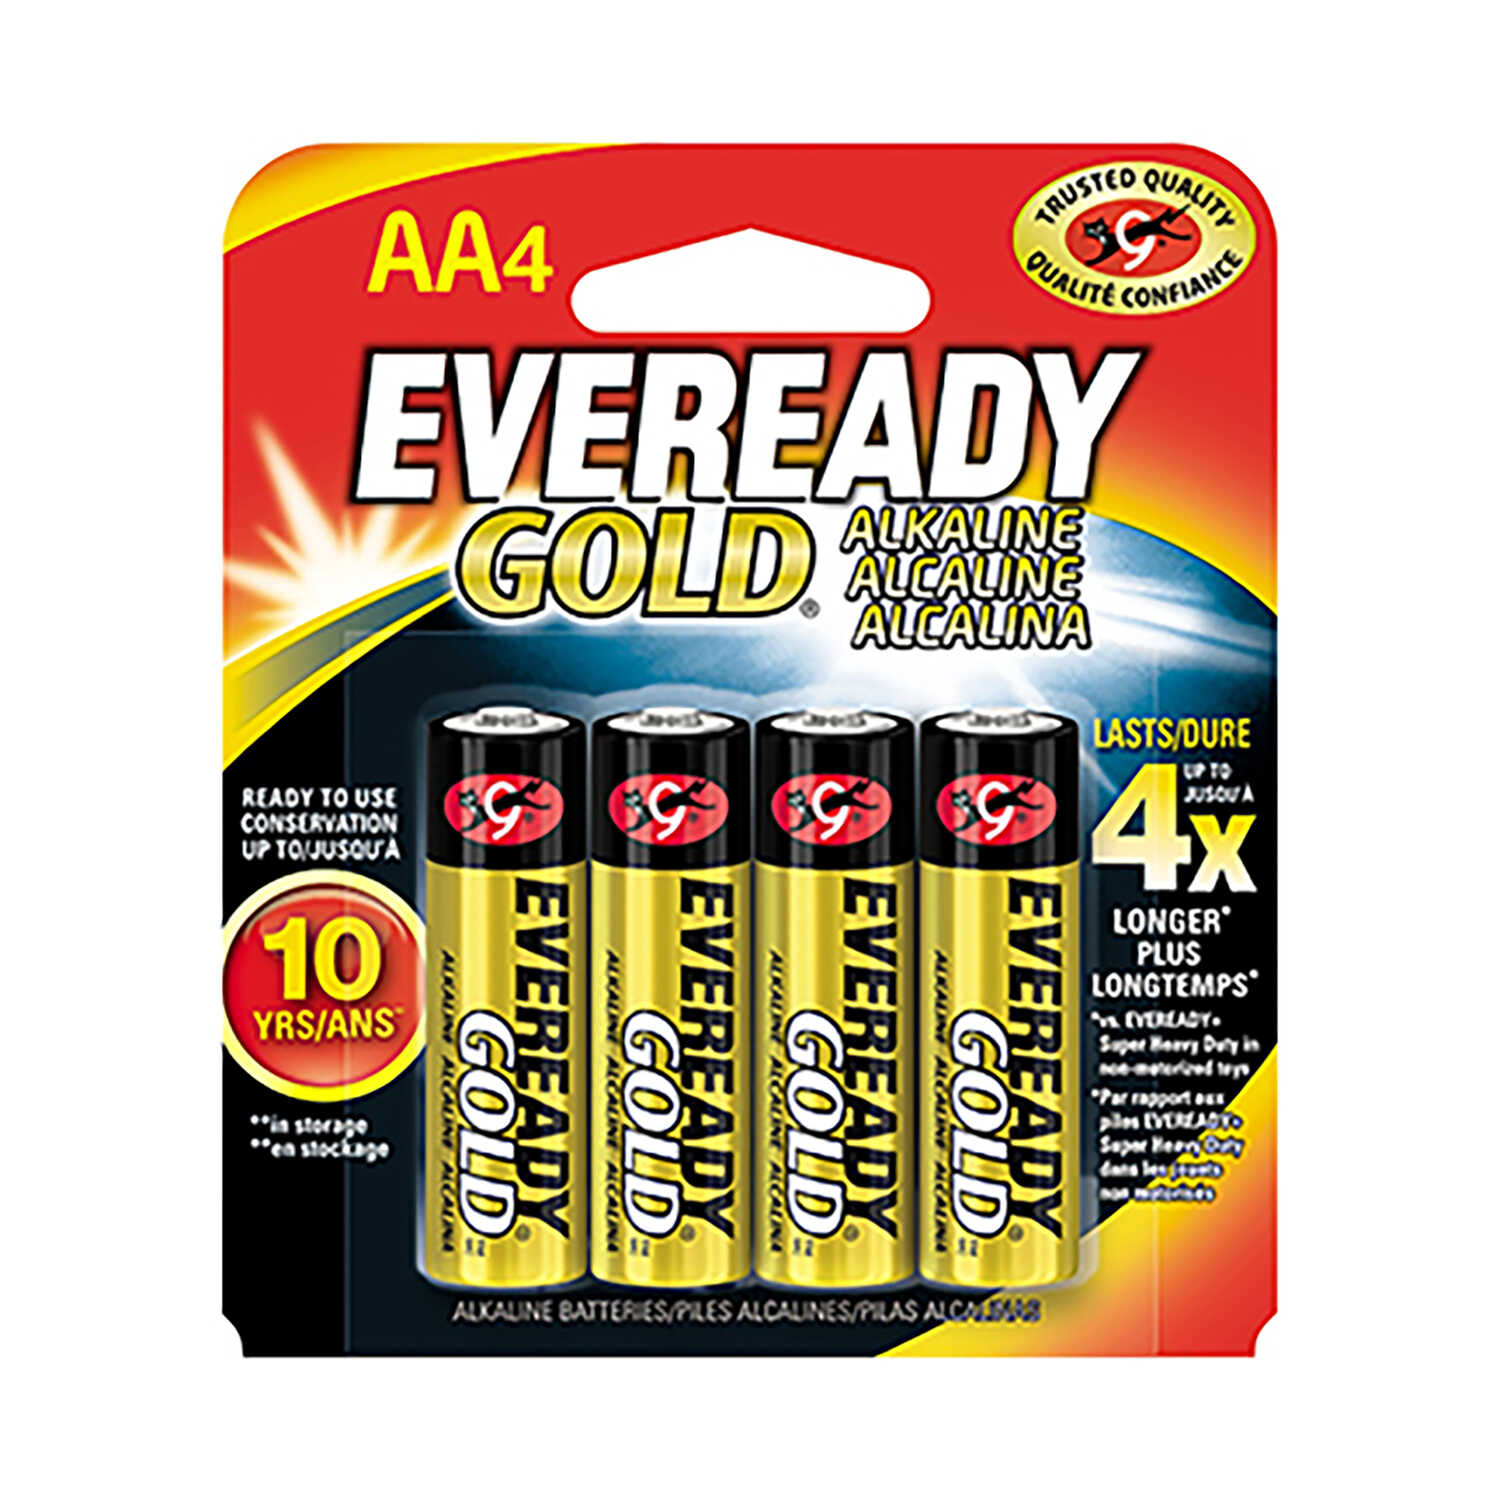 Eveready  Gold  AA  Alkaline  Batteries  1.5 volt 4 pk Carded